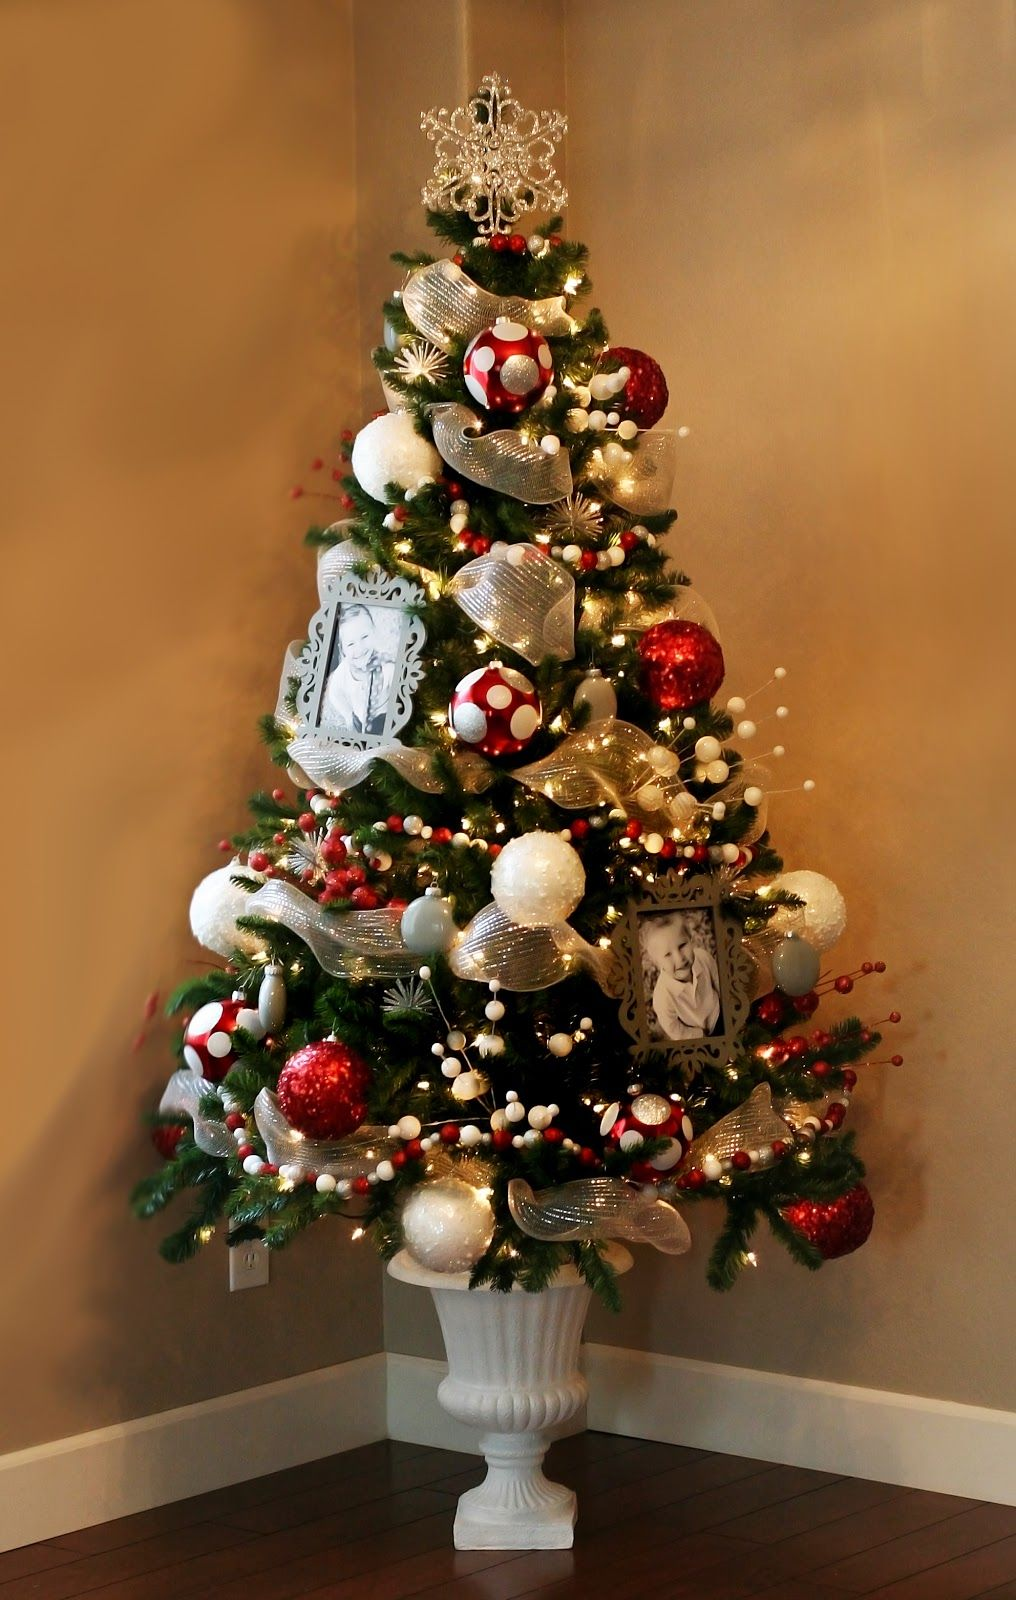 Idea For Christmas Decorating Small Fake Trees In Urns Around The House Themes Disney Kids Tree Etc